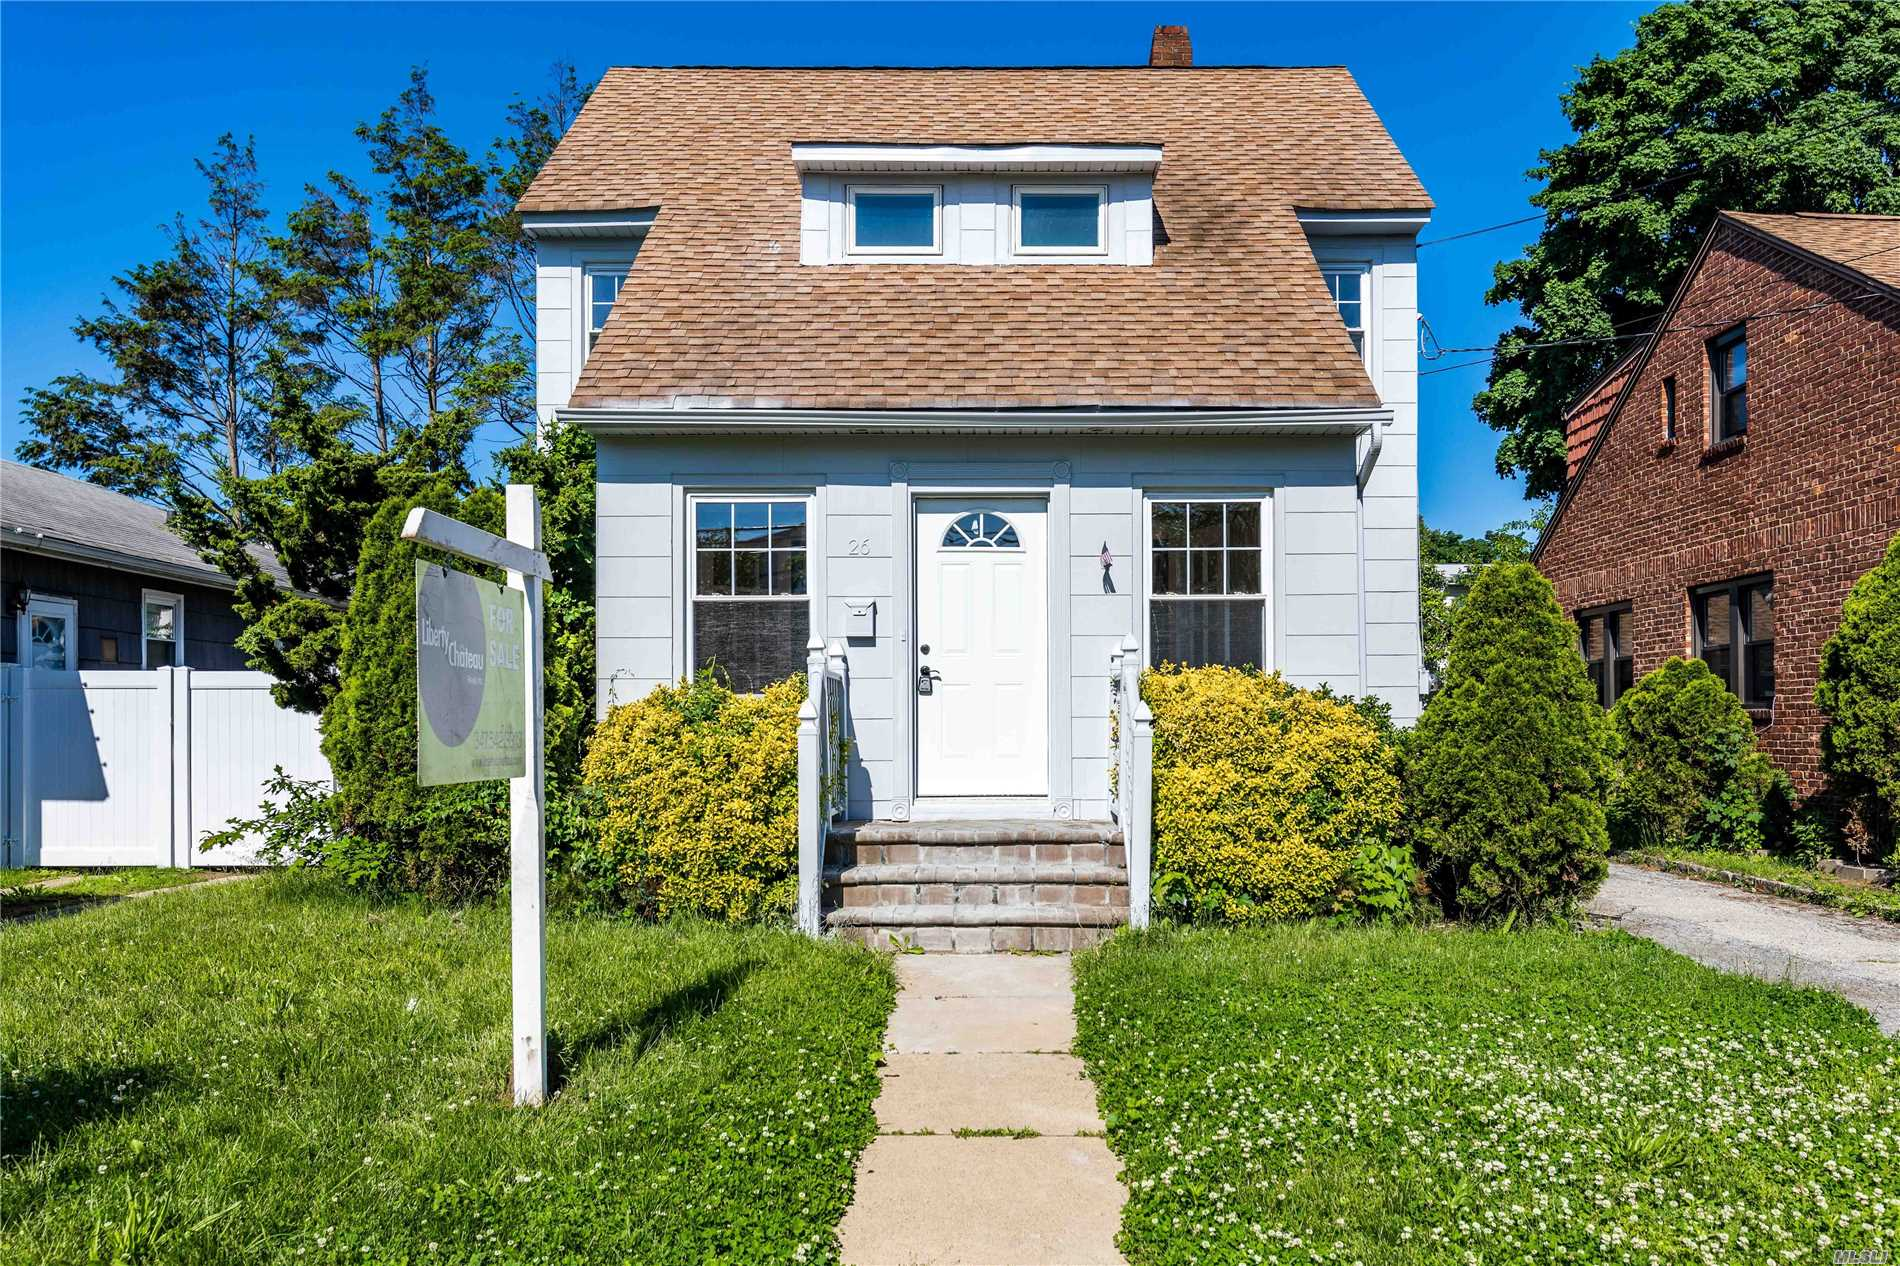 Great Opportunity To Own This Renovated 2 Story Colonial In Picturesque West Hempstead, New York. This Home Offers 1182 Sqft With A Brand New Kitchen And Bathroom. Complete With A Finished Basement With An Additional 500Sqft Of Living Space, Detached 1 Car Garage And A Relaxing Back Patio Area Just Waiting For Your Personal Touches!